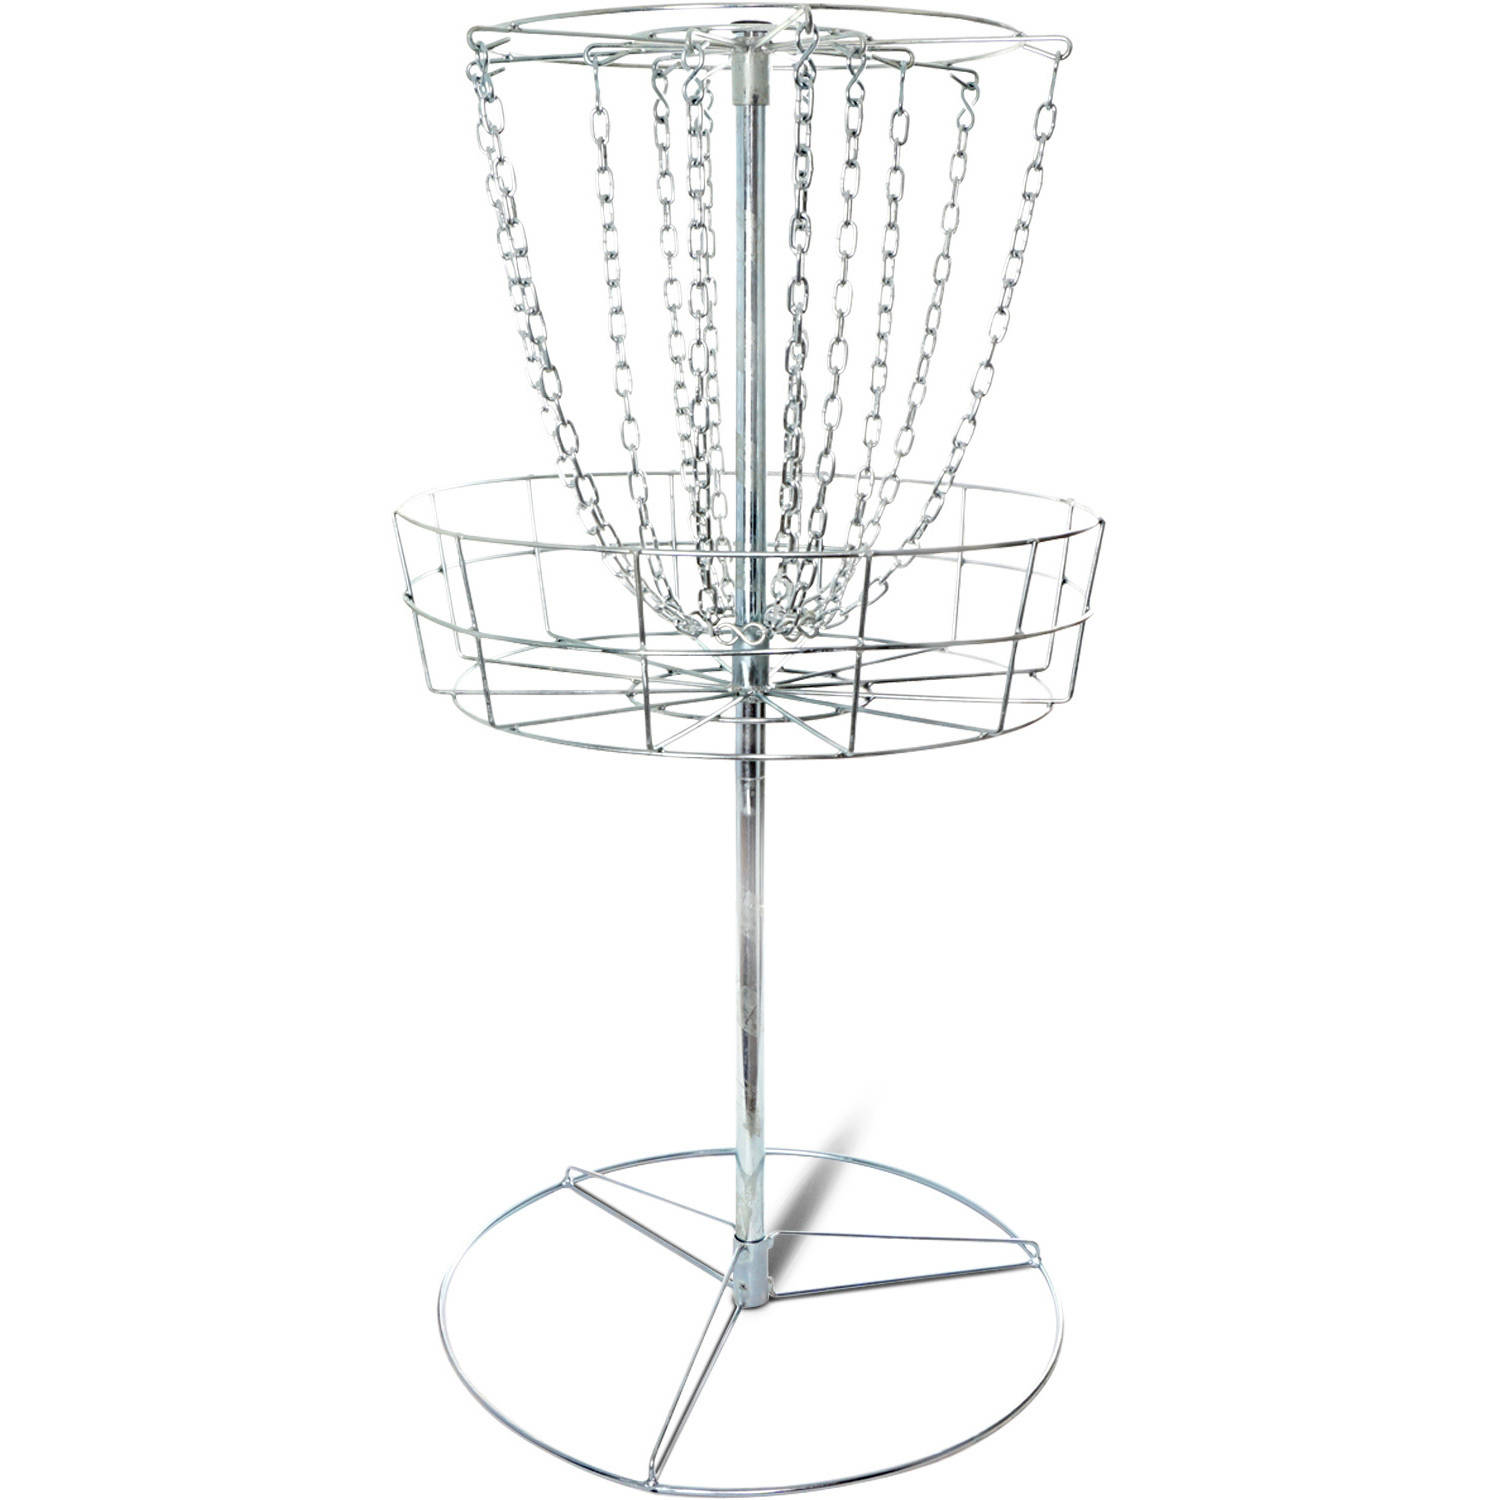 Titan Disc Golf Basket Double Chains Portable Practice Target Steel Frisbee by Titan Fitness